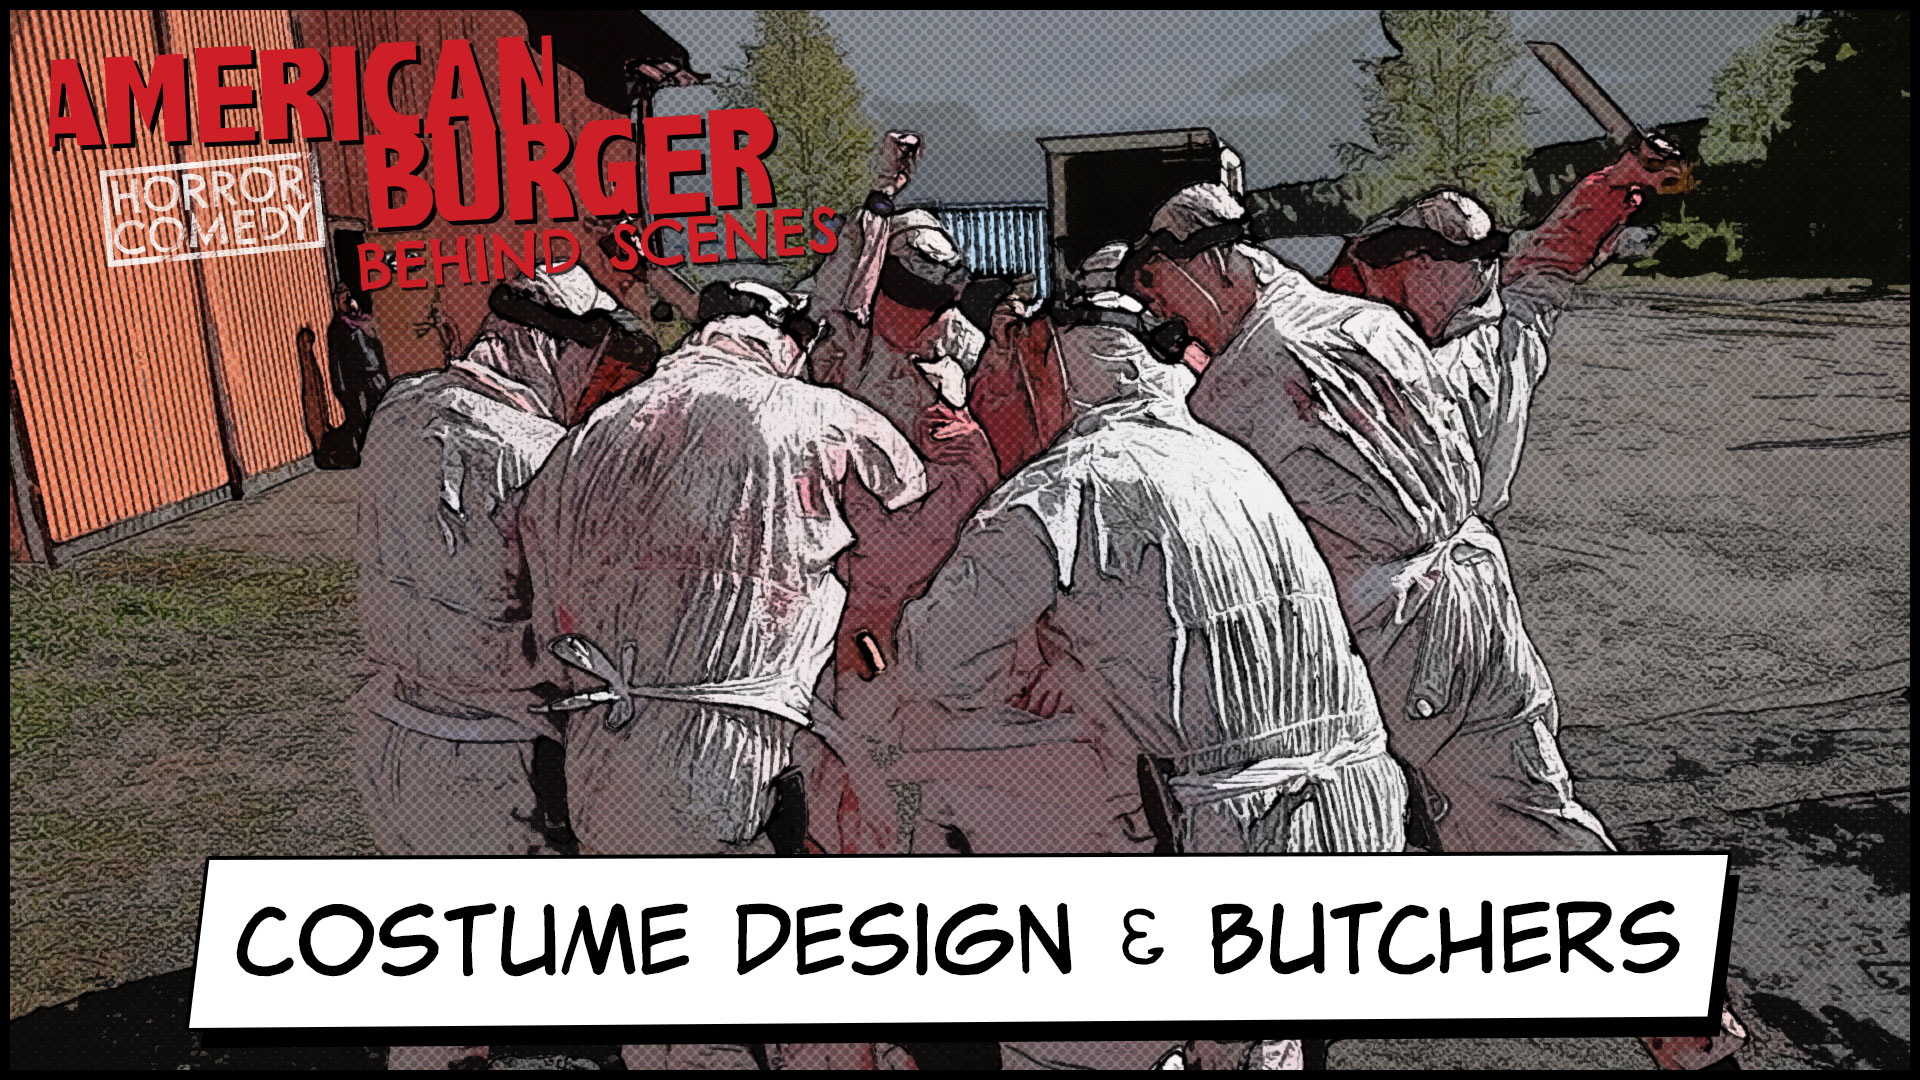 Costume Design & Butchers